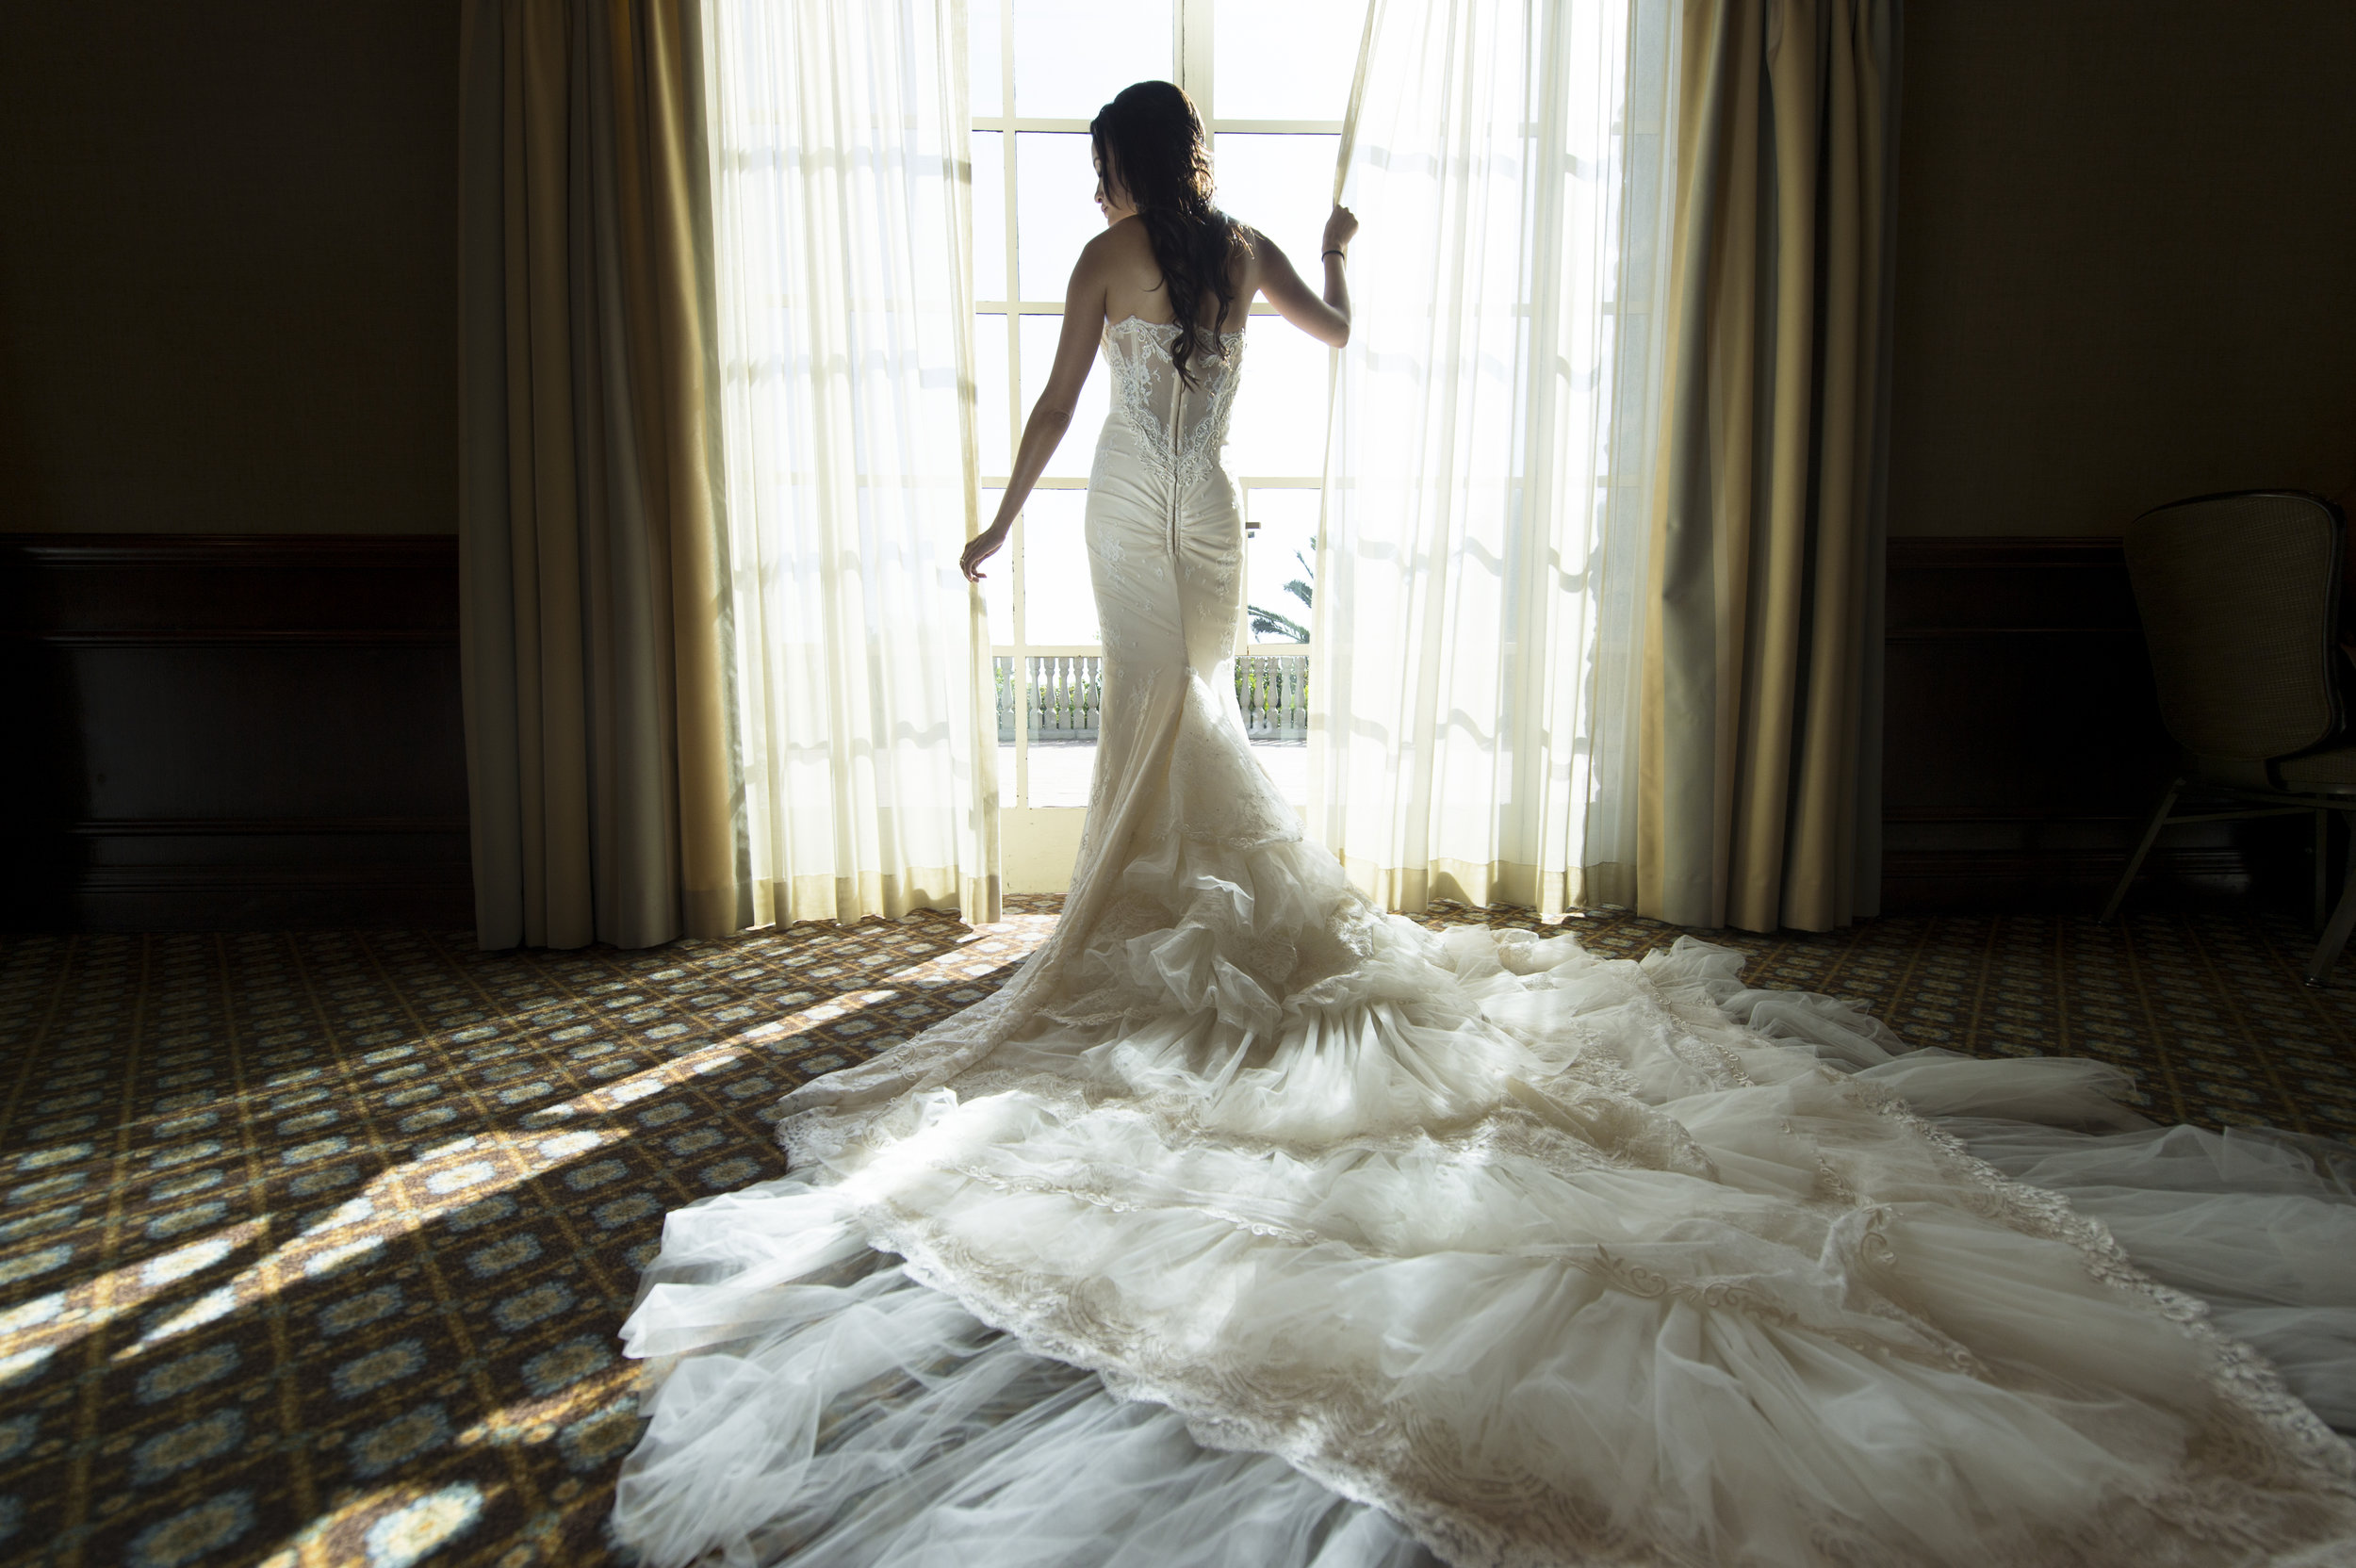 Silhouette Bridal Portrait - A Romantic Bel Air Bay Club Ocean-View Wedding - Southern California Wedding - Kevin Dinh Photography